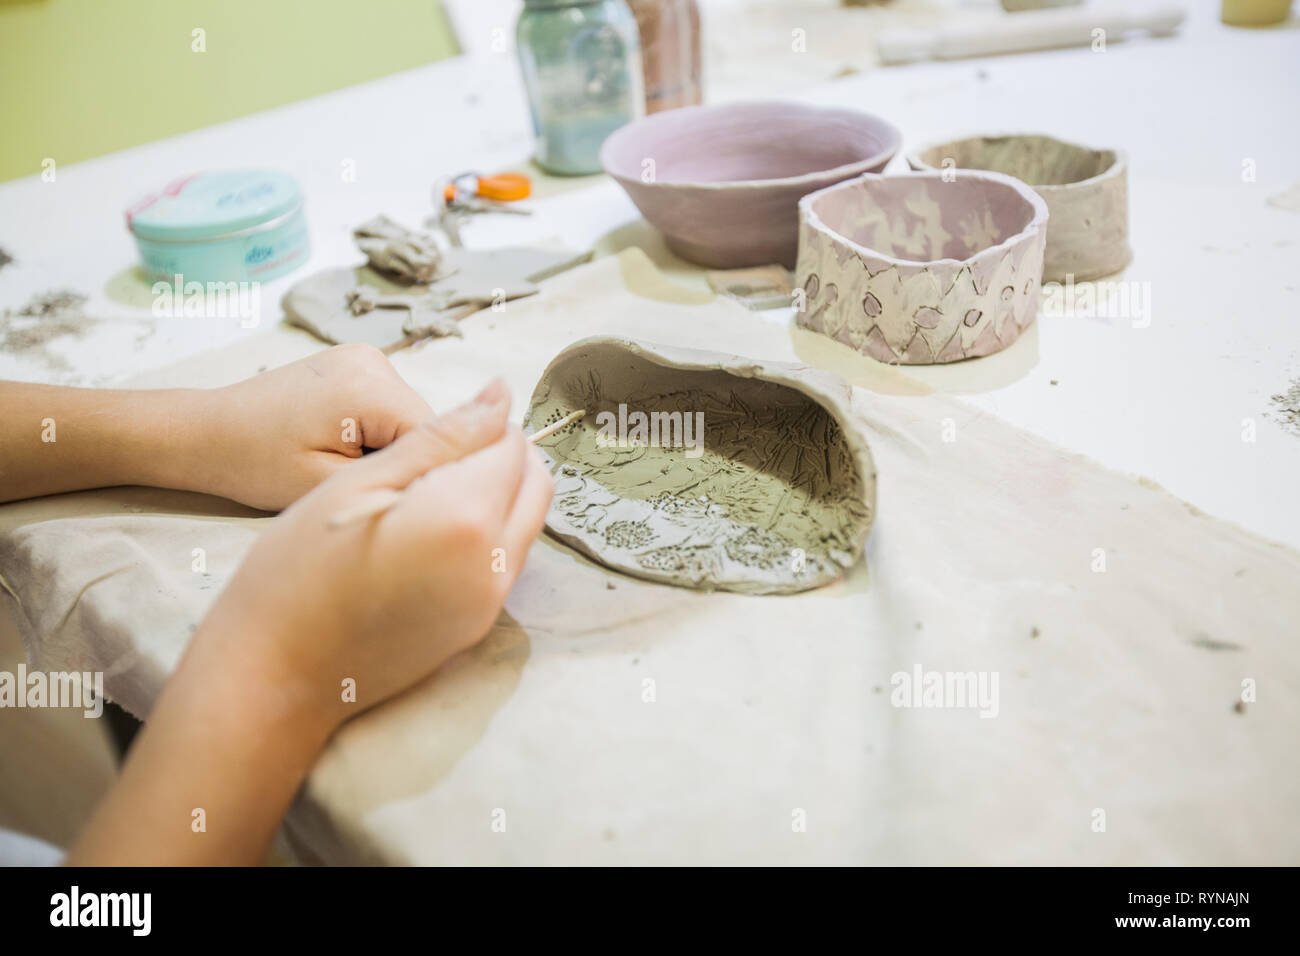 Clay Made Items High Resolution Stock Photography And Images Alamy